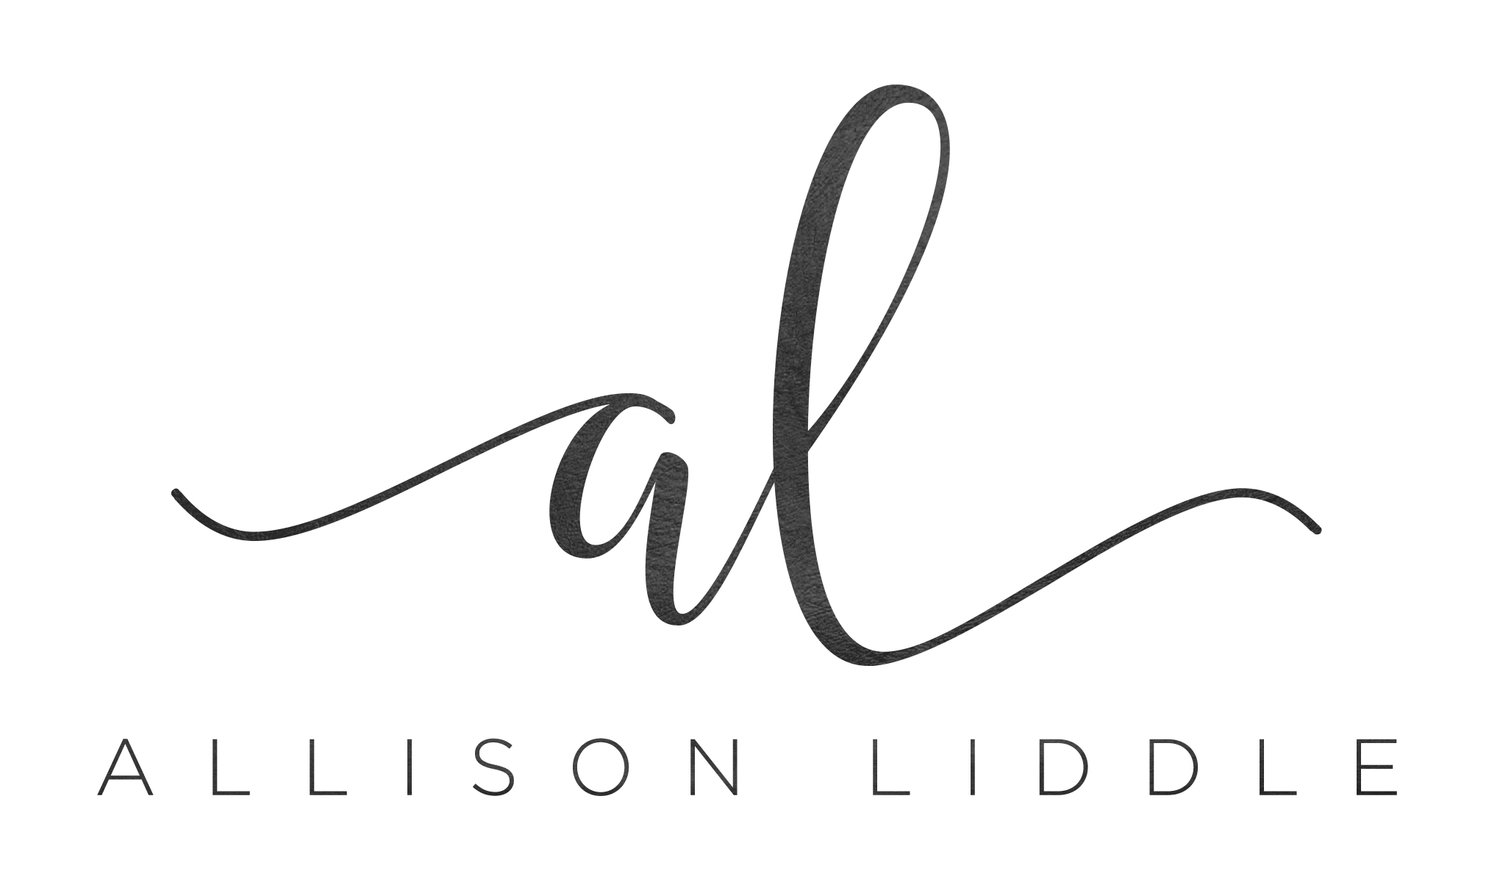 Allison Liddle